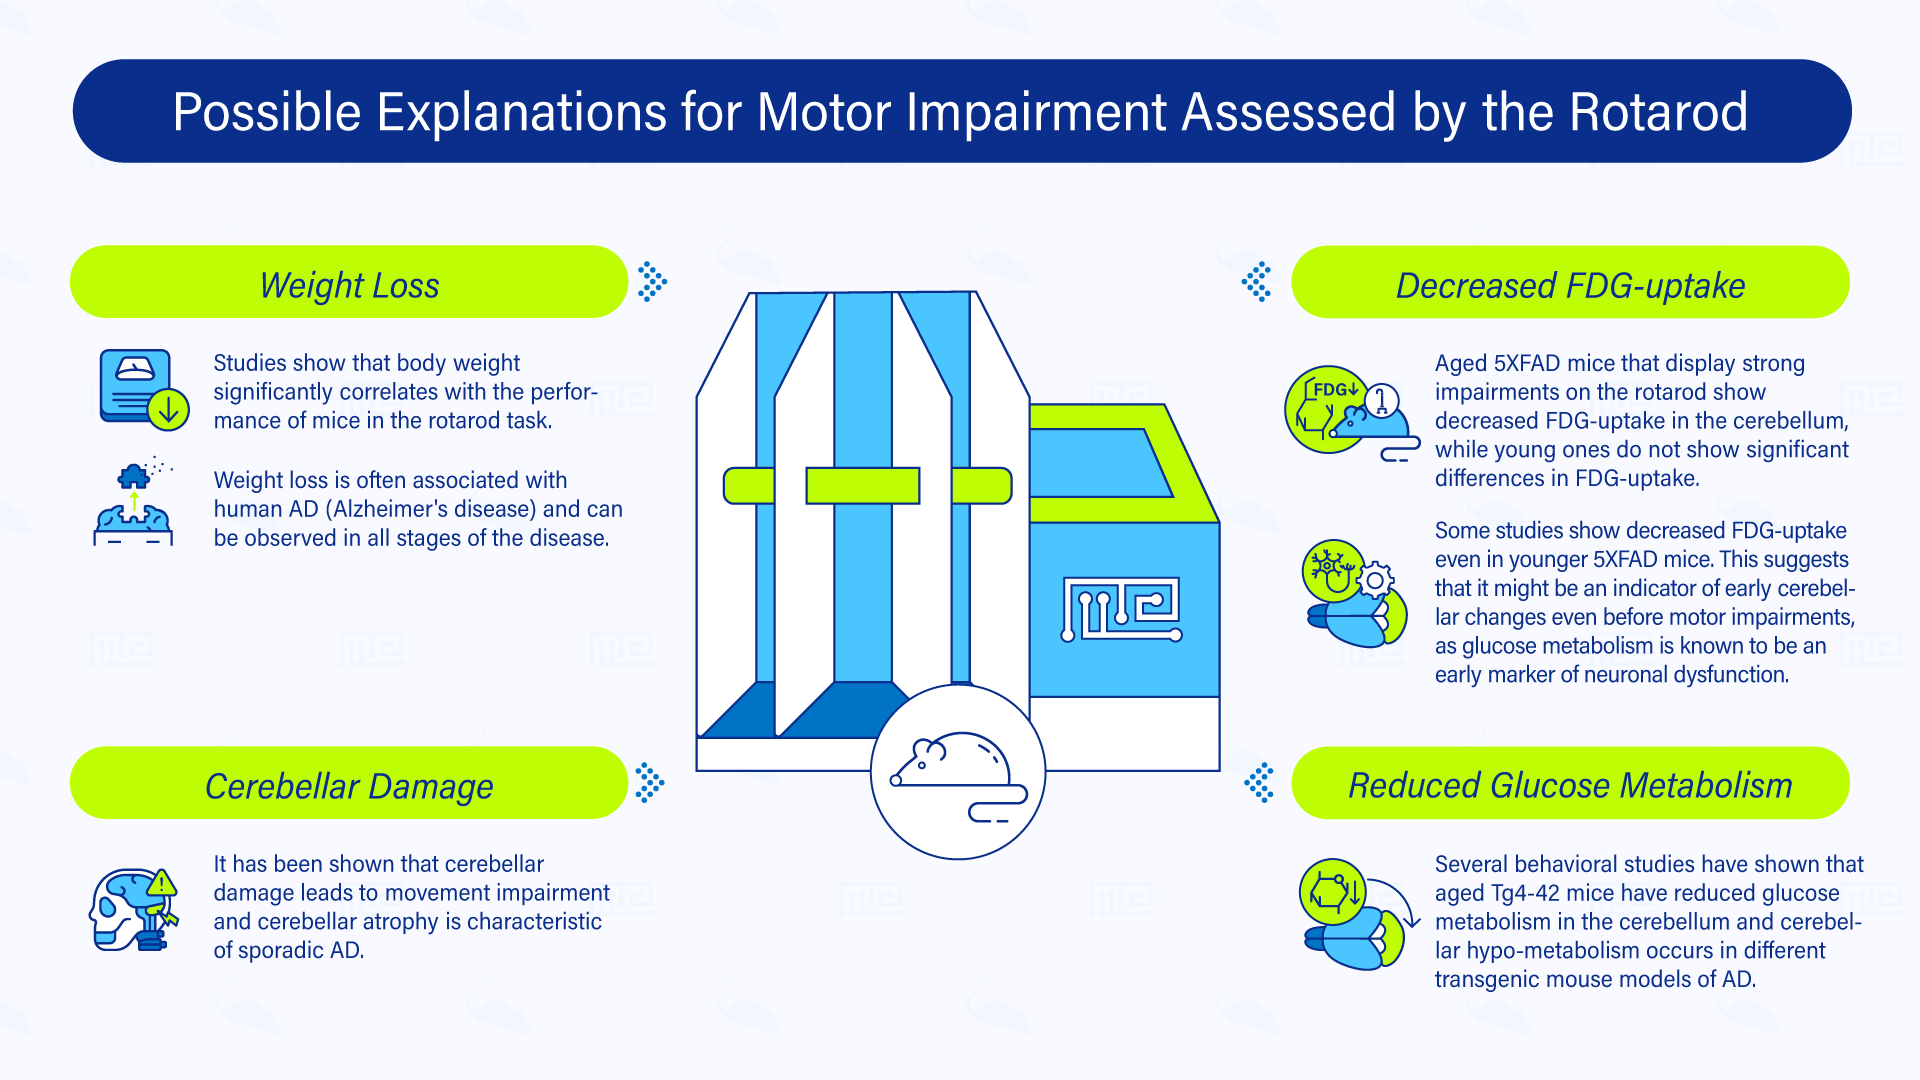 Possible explanations for motor impairment assessed by the Rotarod